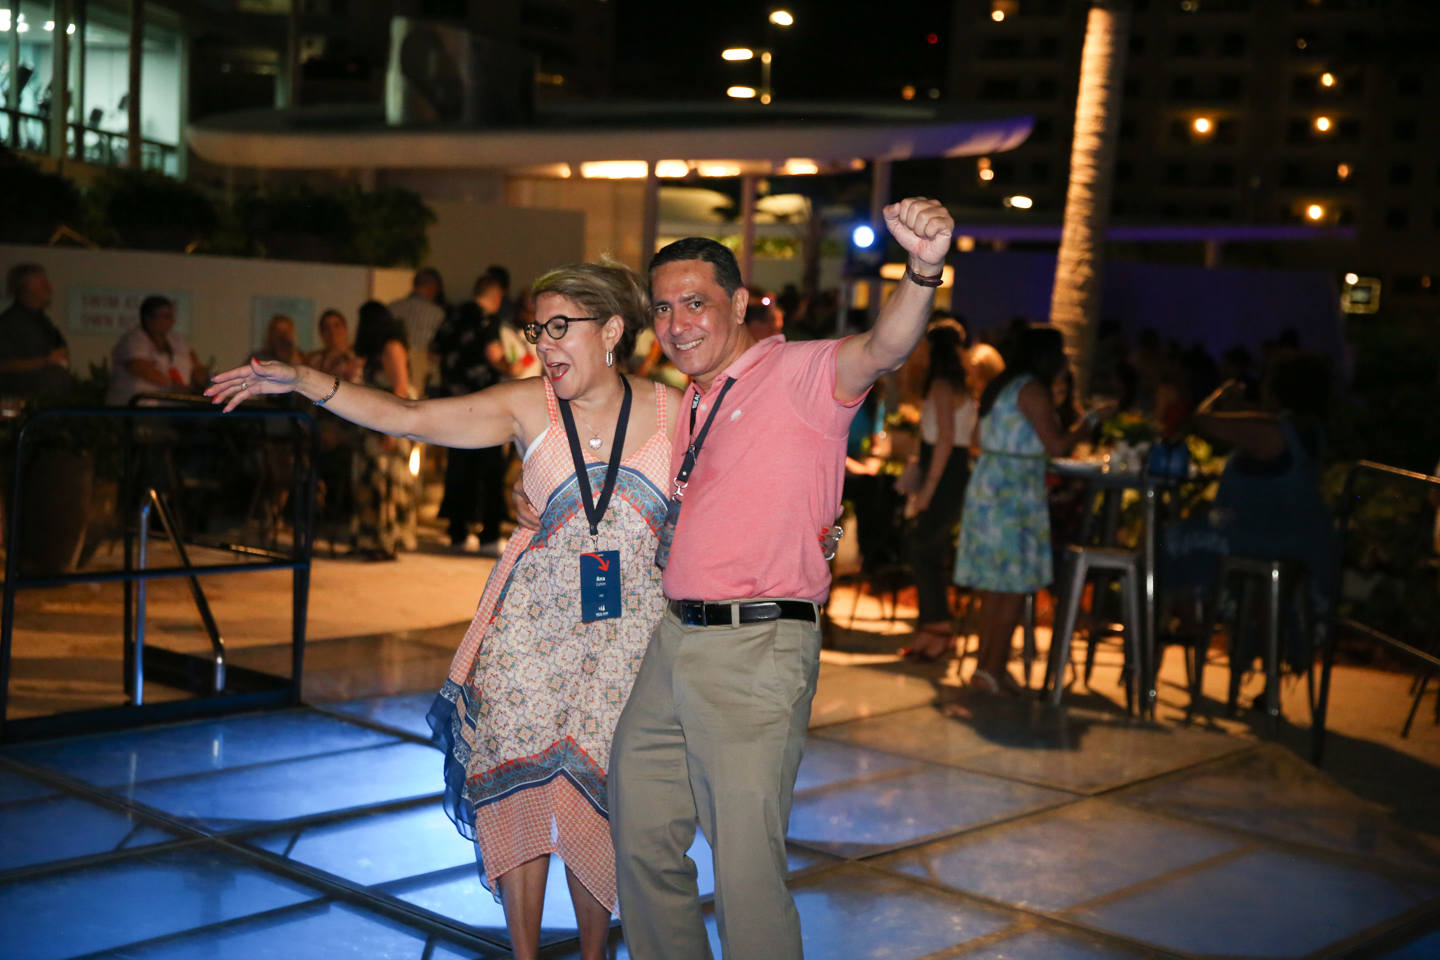 Professional-Event-Photography-Orlando-Sealand-annual-conference-Puerto-Rico-10.jpg